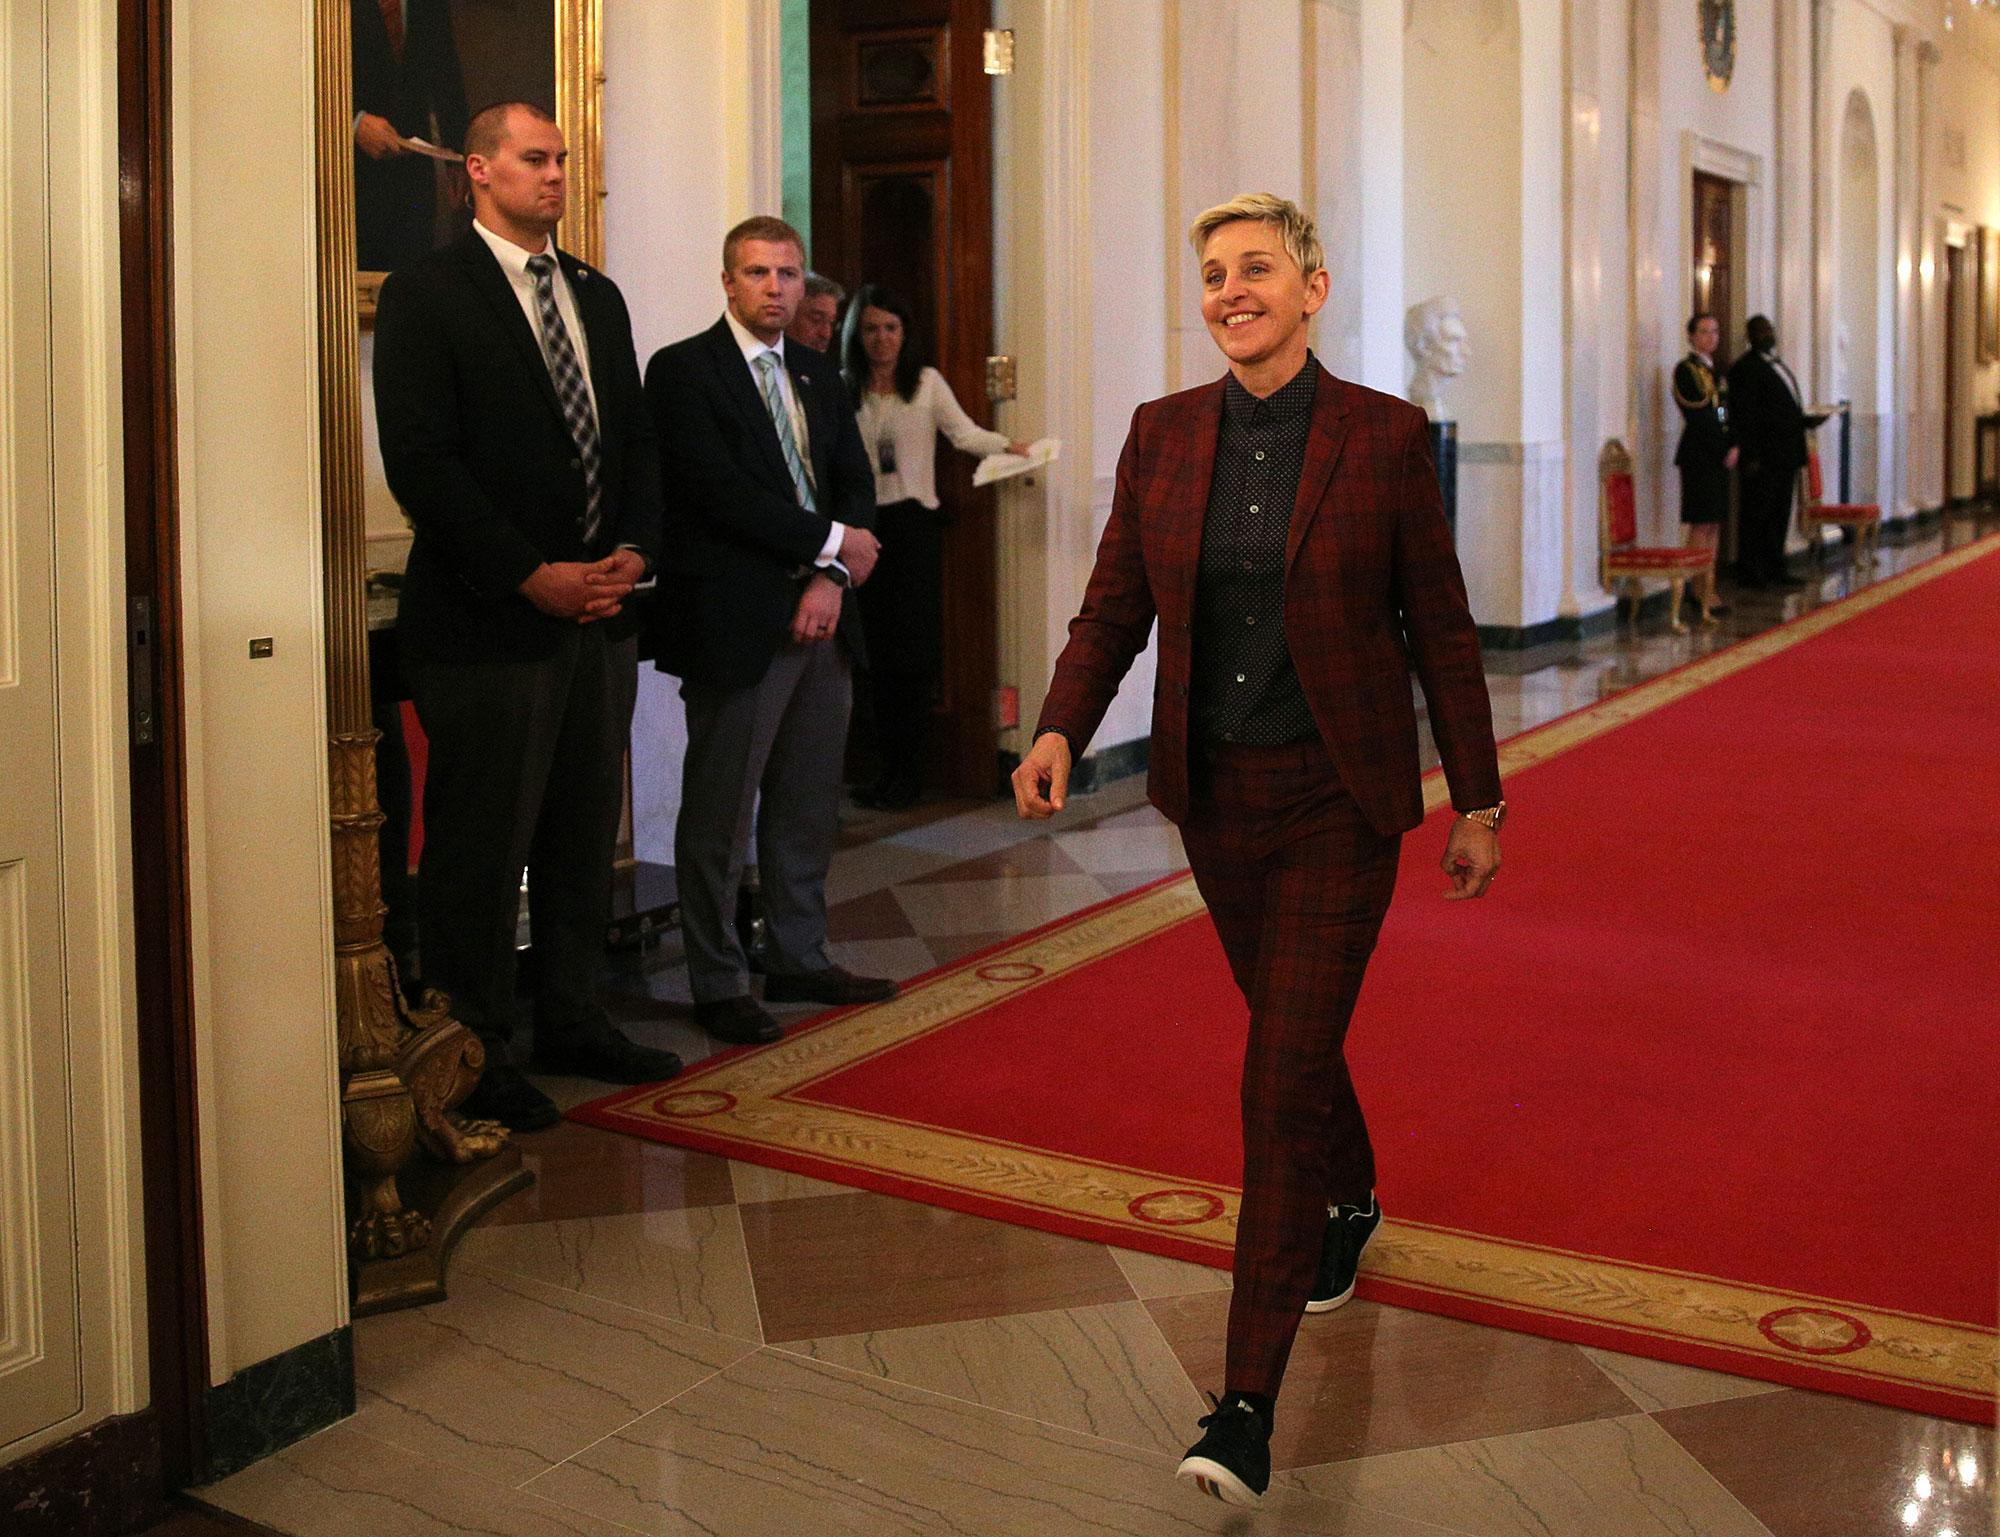 <p>Comedian Ellen DeGeneres heads to her seat before a ceremony awarding the Presidential Medal of Freedom to various recipients in the East Room of the White House in Washington, U.S., Nov. 22, 2016. (Carlos Barria/Reuters) </p>